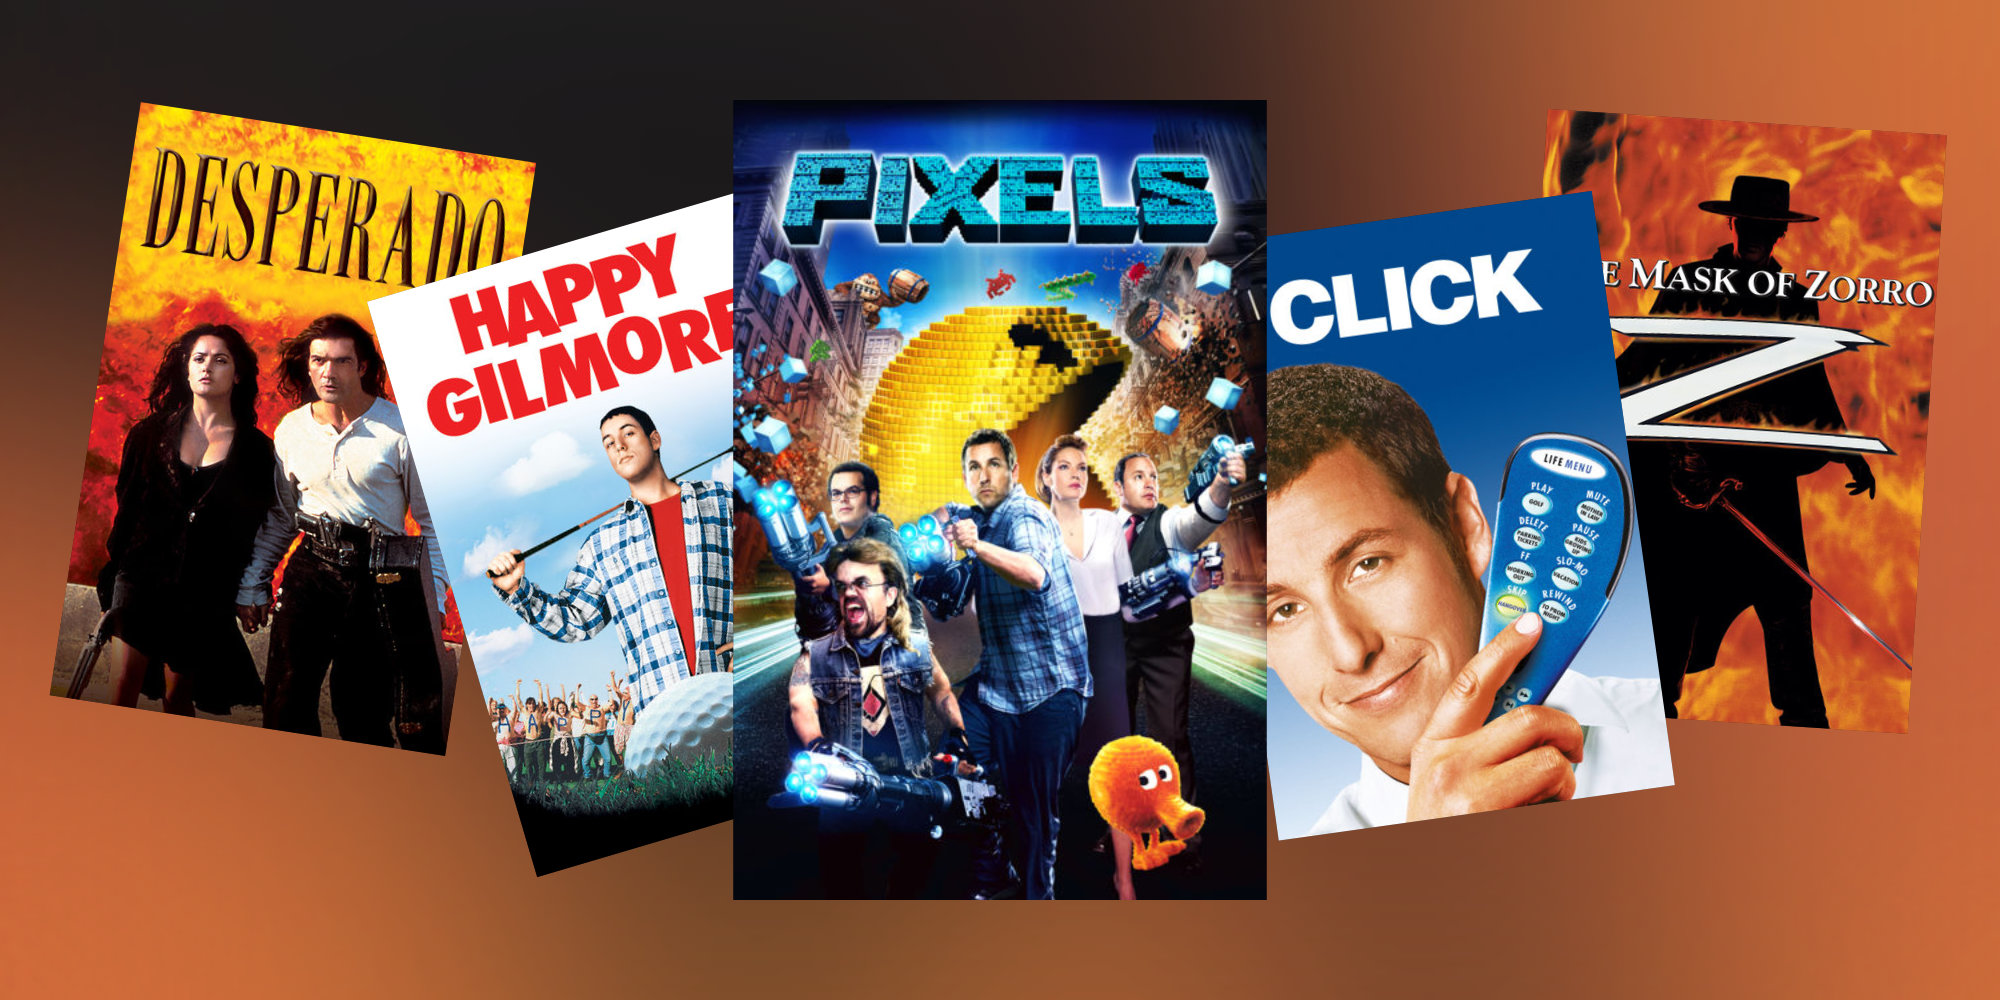 Amazon offers up to 60% off select digital HD movies and TV shows from $5